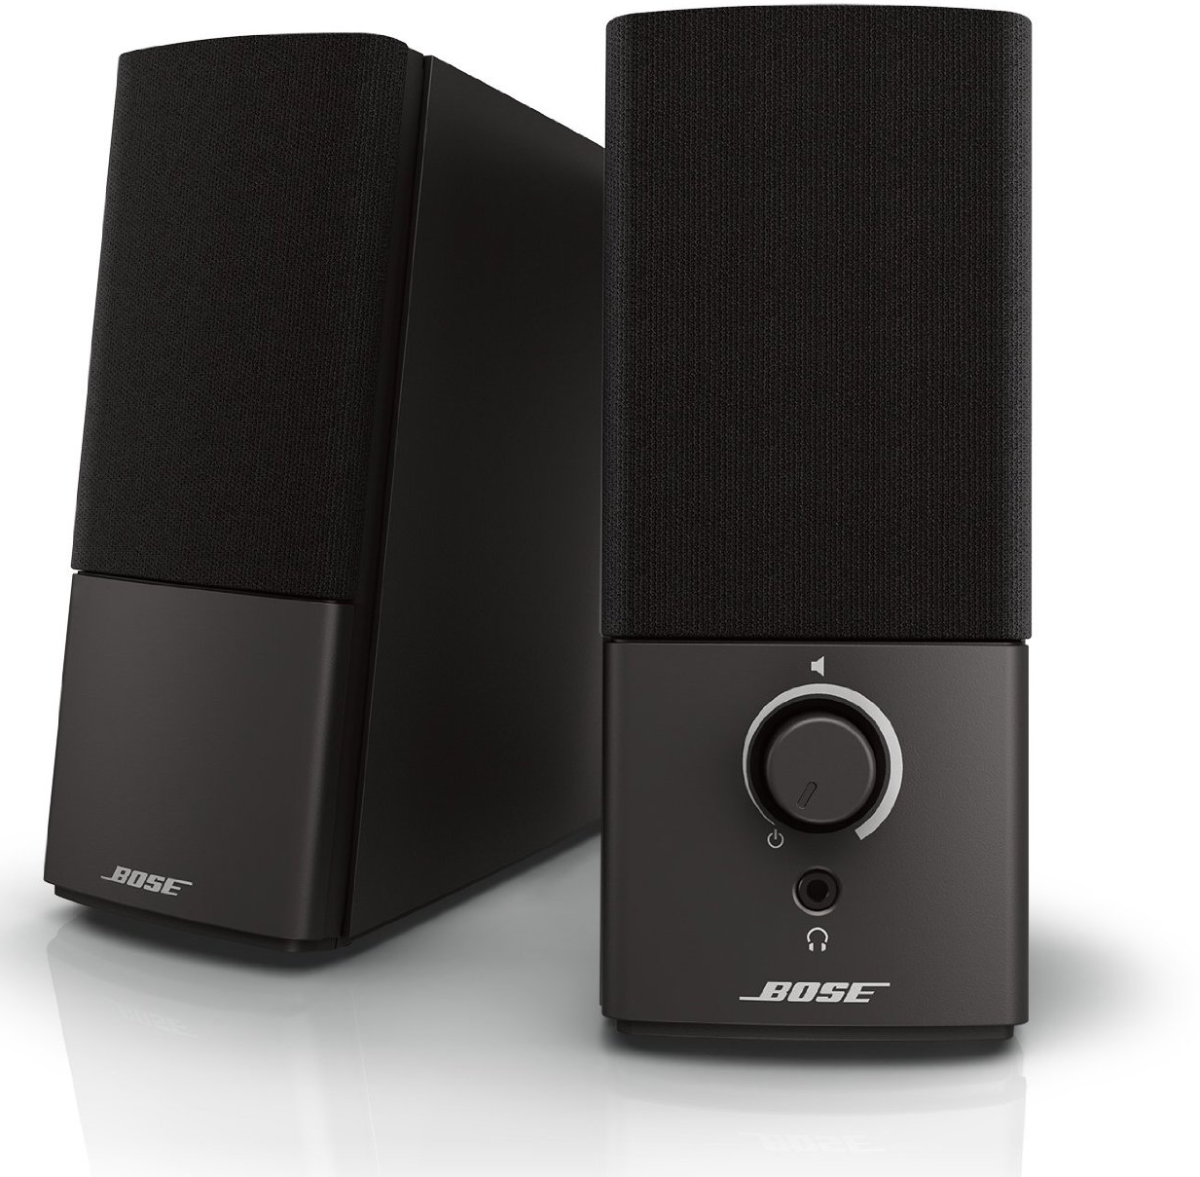 2.0 and 2.1 Best Computer Speakers Under 100